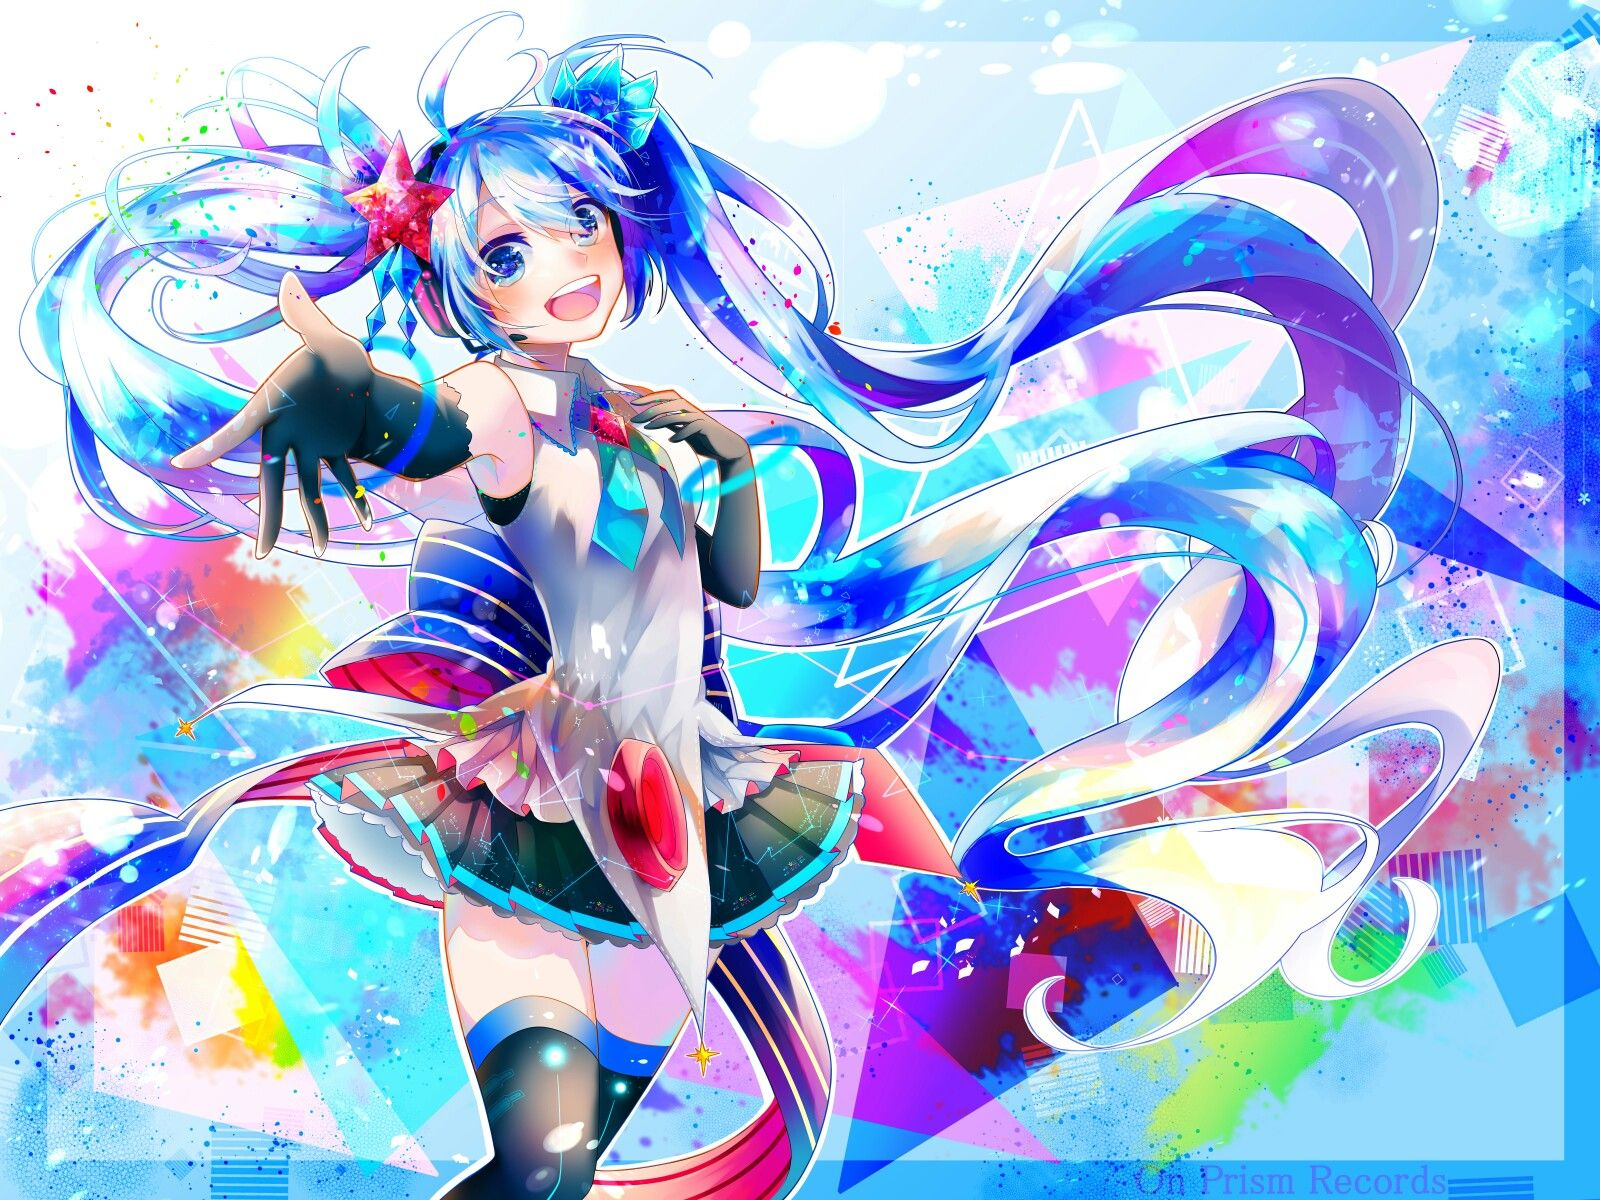 Miku colorful art Art by 白雪とわ in Pixiv